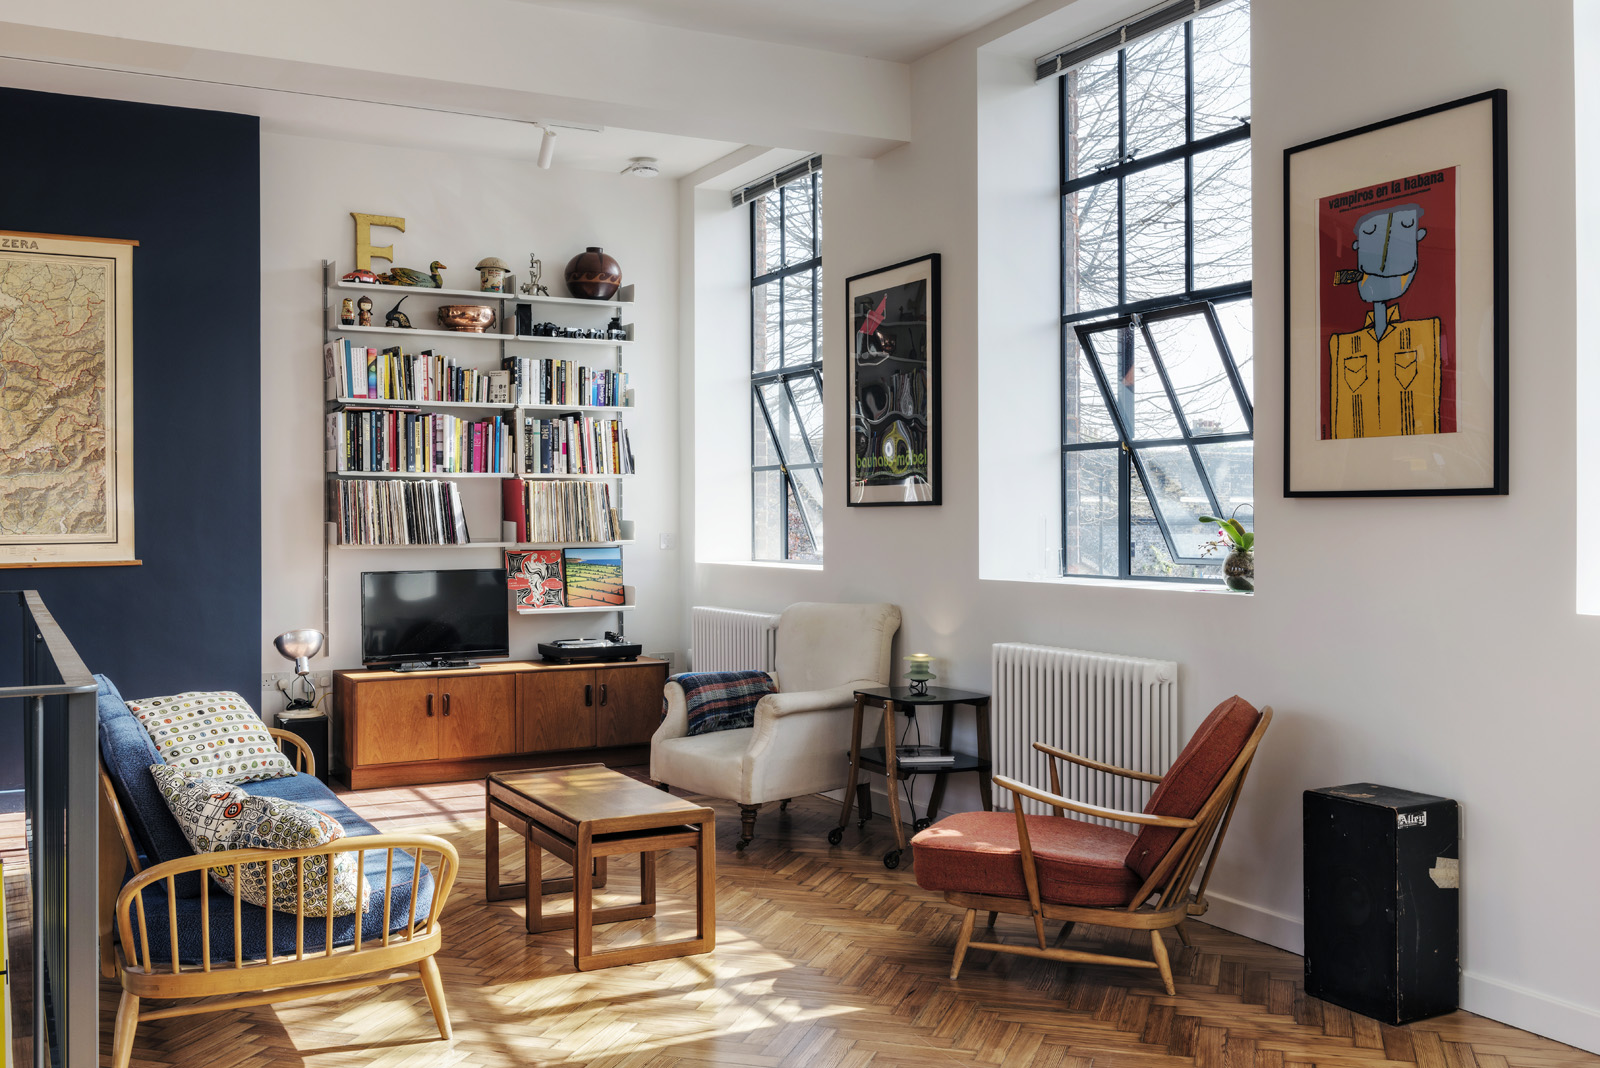 The original parquet flooring was refurbished and period-correct steel framed windows reinstated.